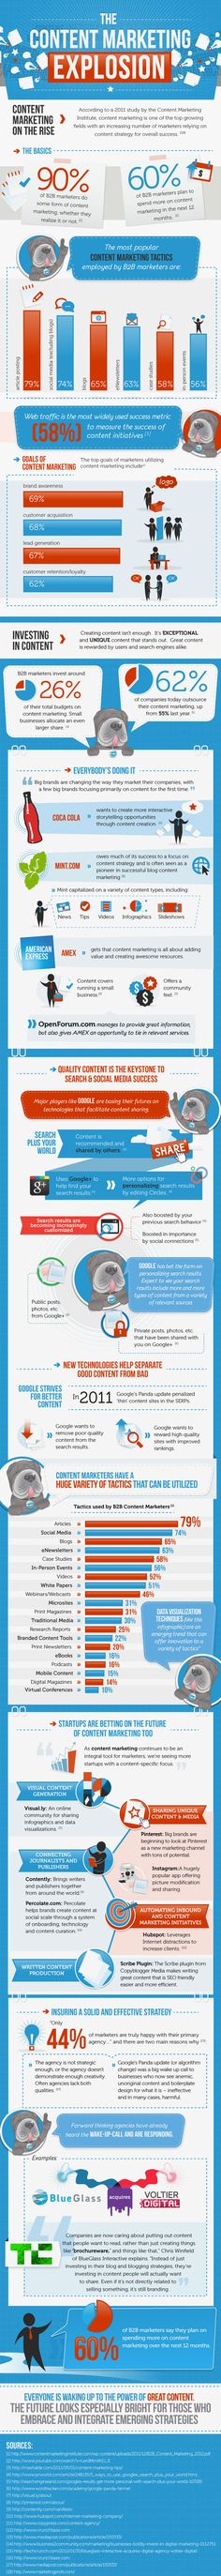 The Content Marketing Explosion [Infographic]